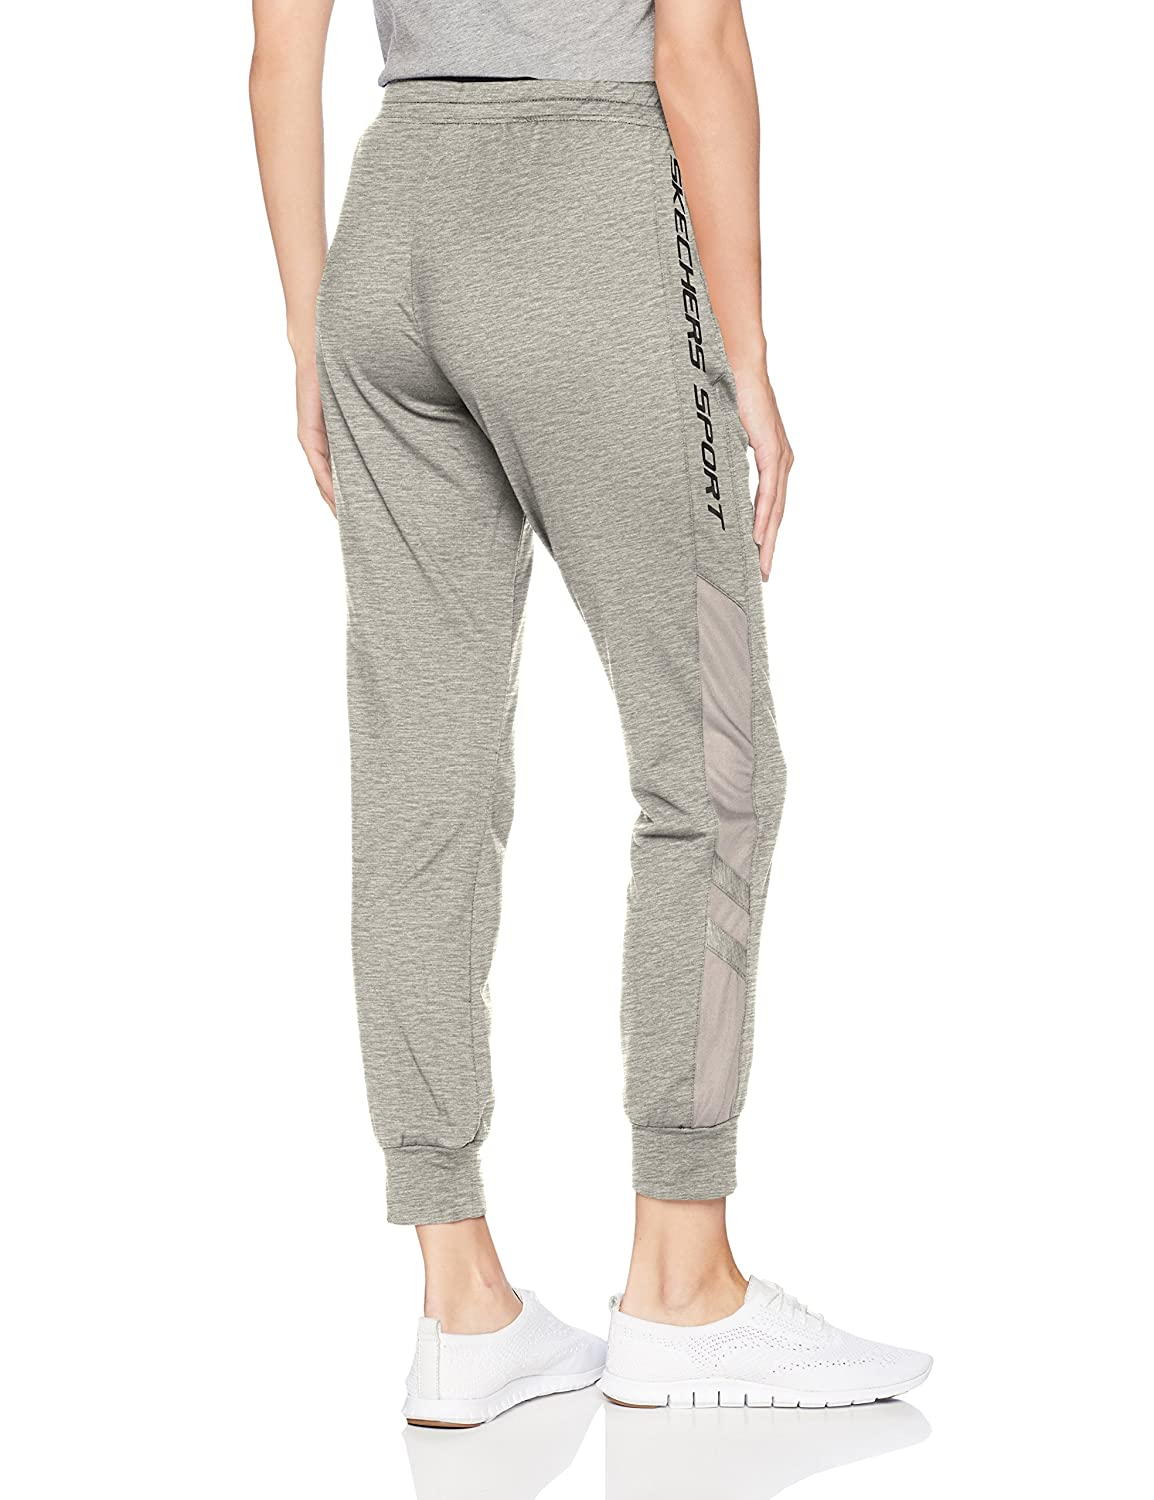 Skechers Active Women's Chill Jogger Pant